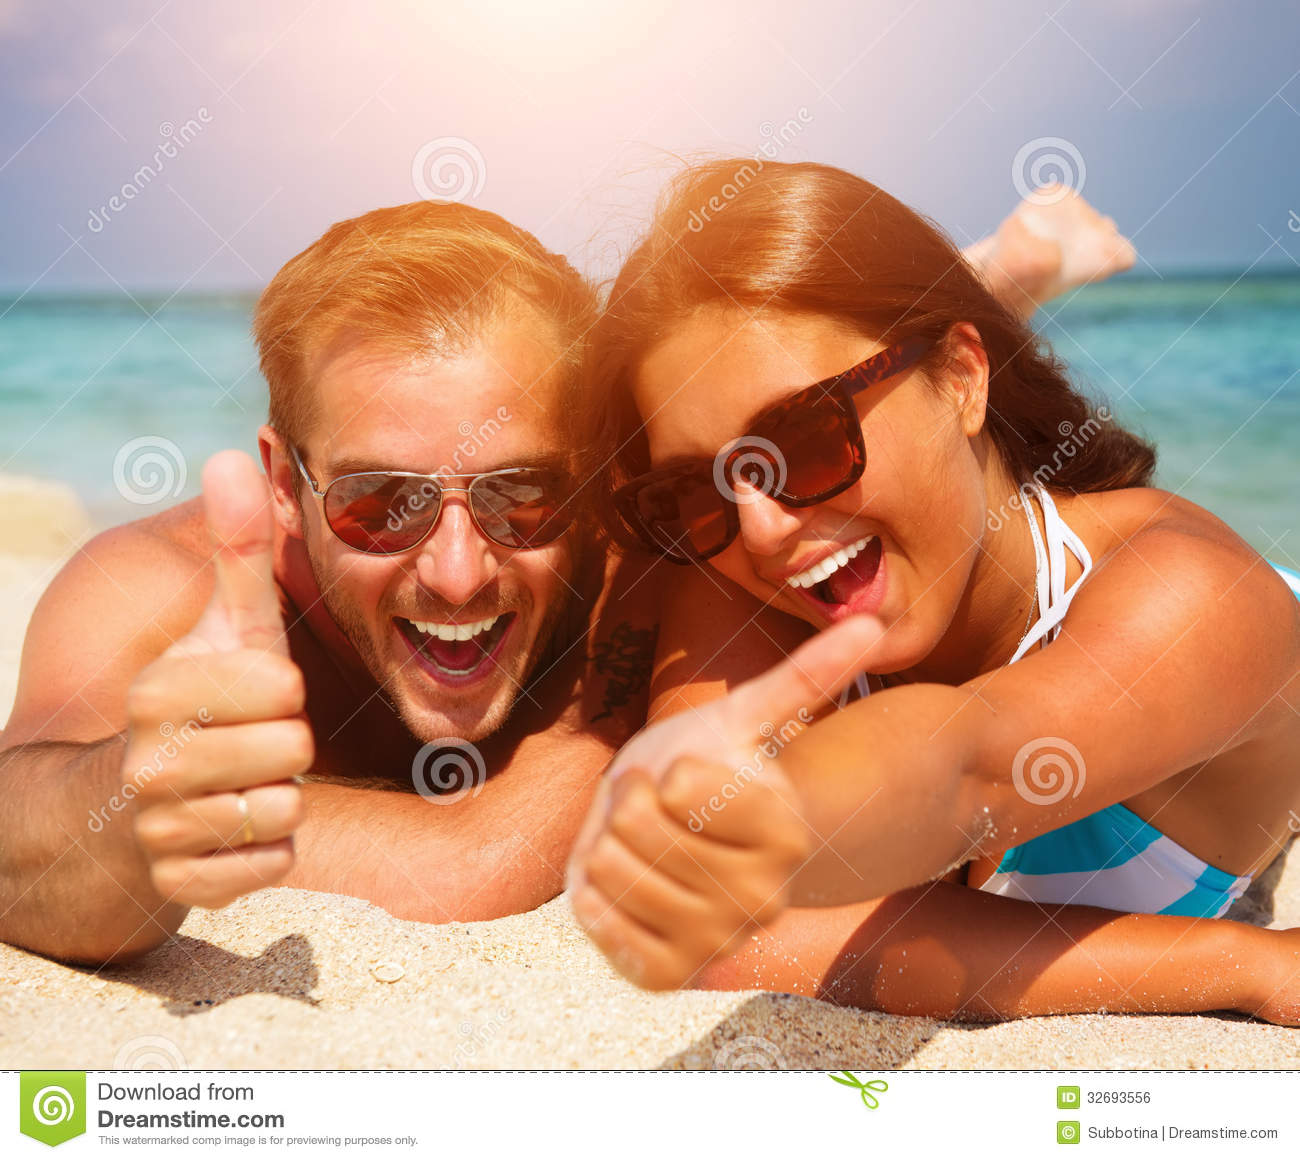 Couple At The Beach Stock Image Image Of Caucasian: Couple In Sunglasses On The Beach Royalty Free Stock Image